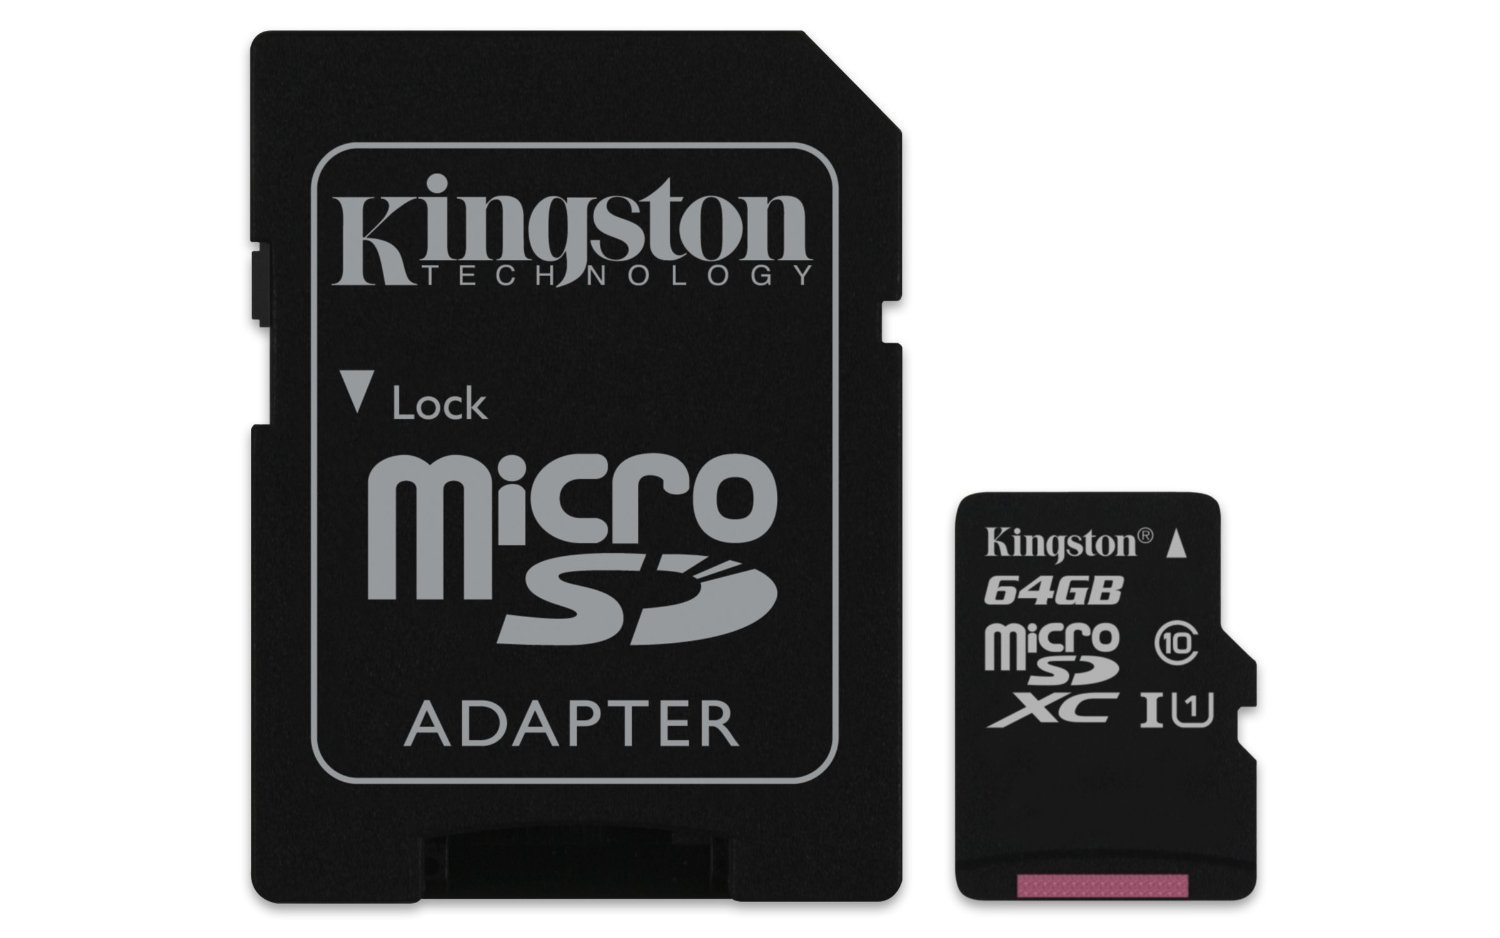 Kingston Memory on Sale Today at Amazon